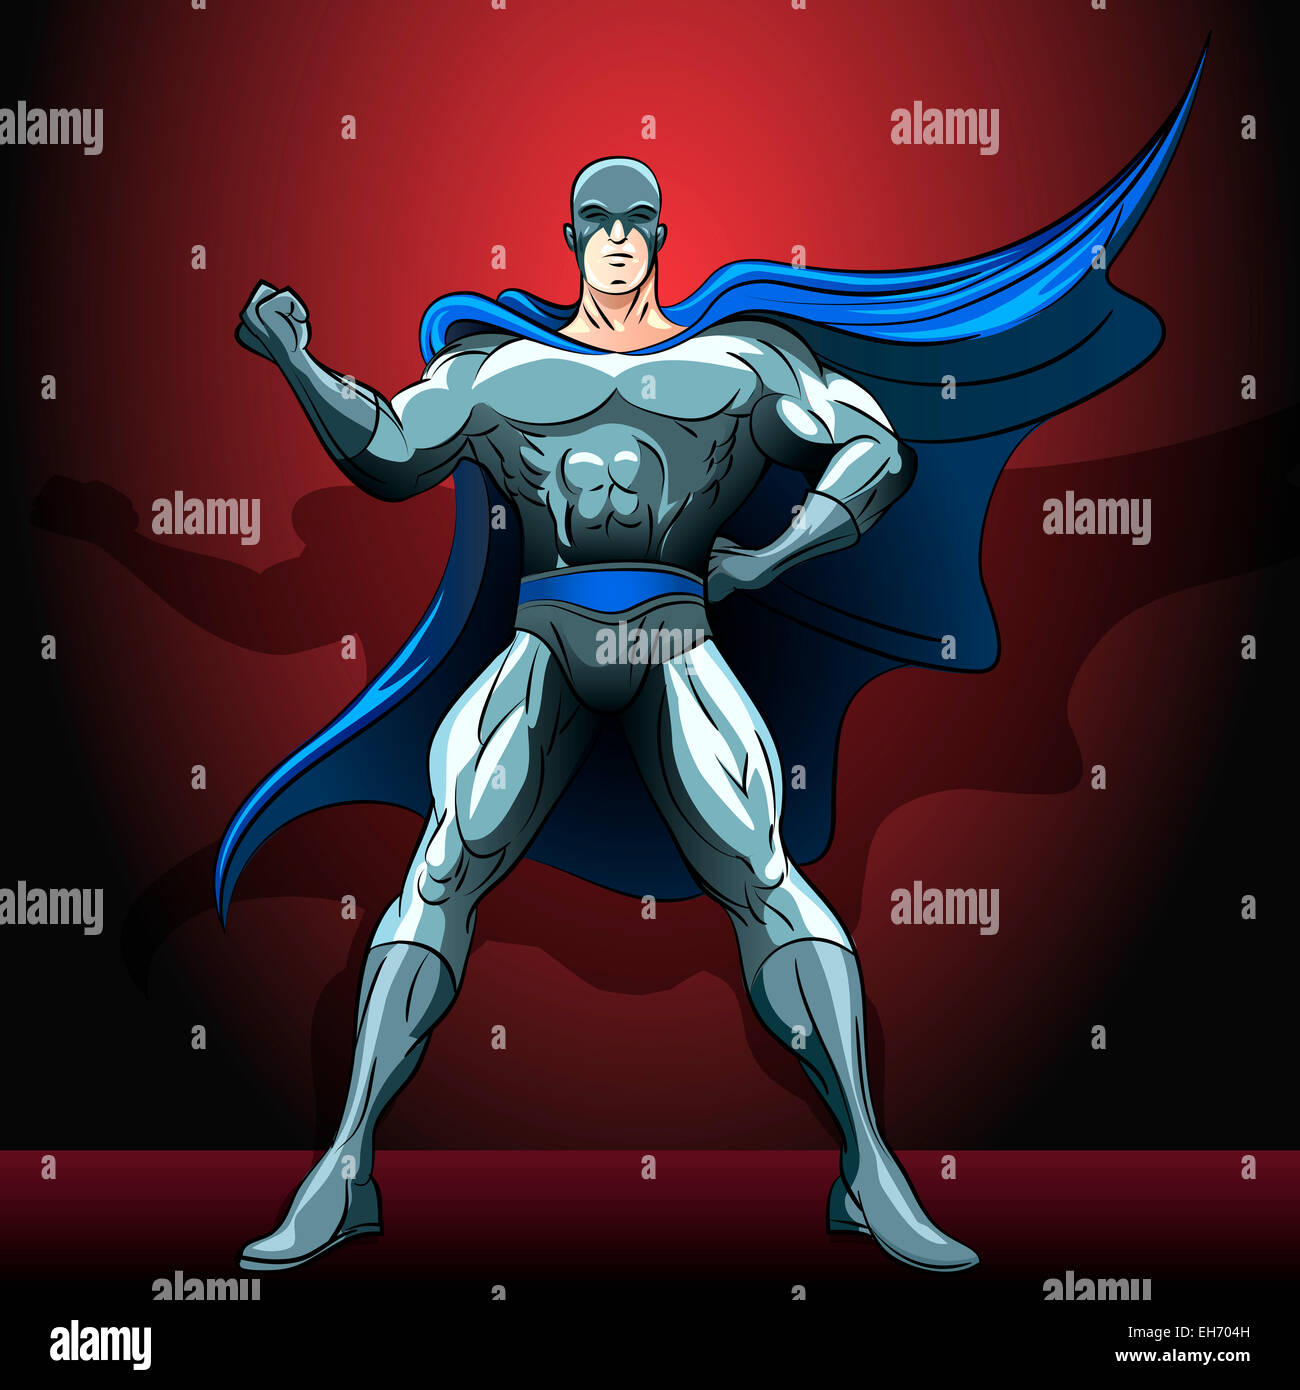 Illustration with hero who decided to save the world and nothing can not stop him drawn in comics style - Stock Image